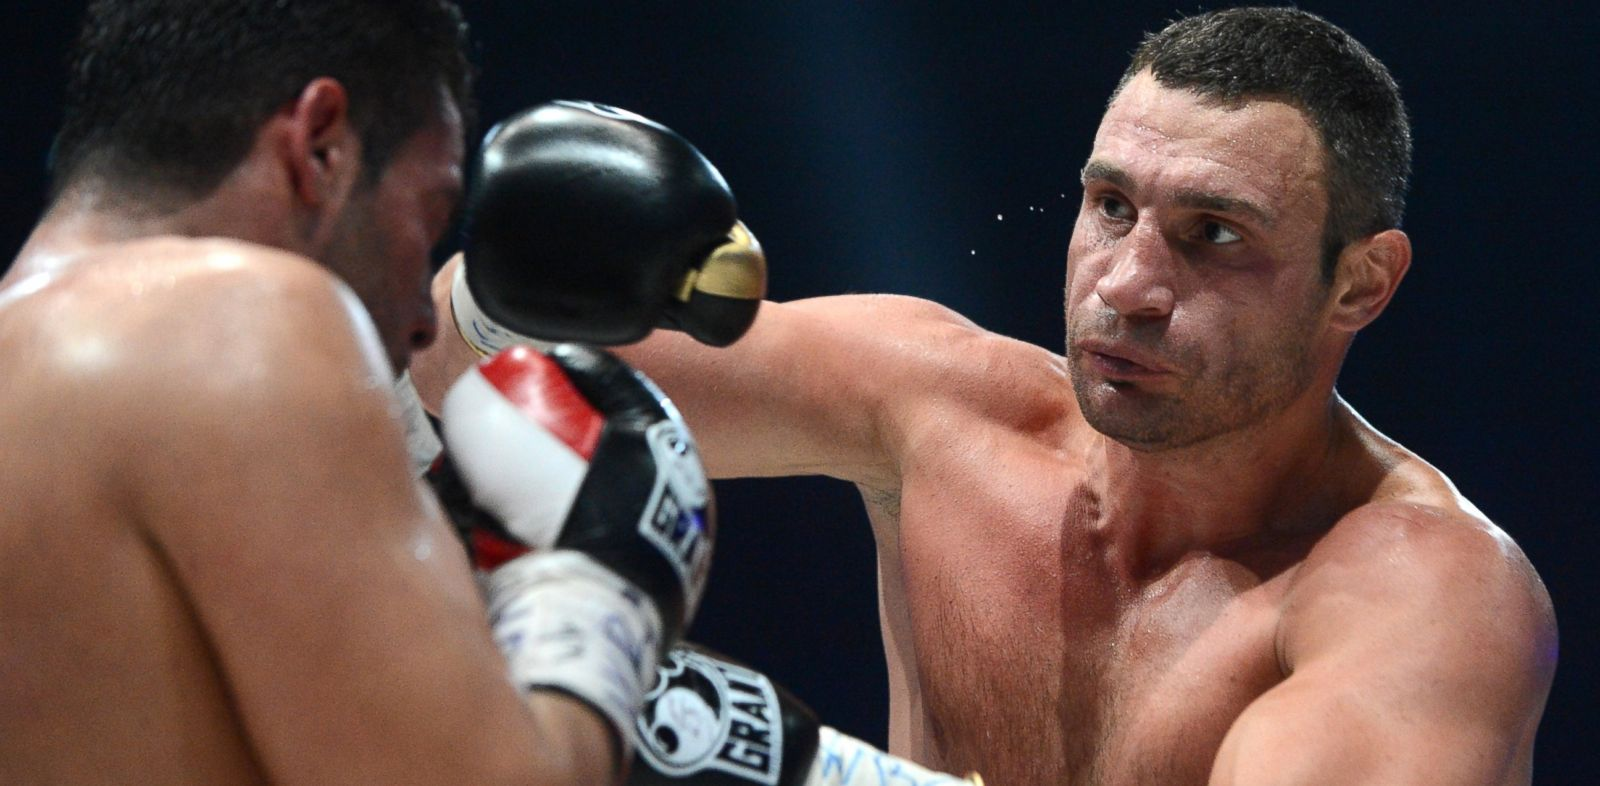 PHOTO: Ukraines two-time World Heavyweight champion Vitali Klitschko, right, fights Germanys Manuel Charr in Moscow, Sept. 9, 2012.